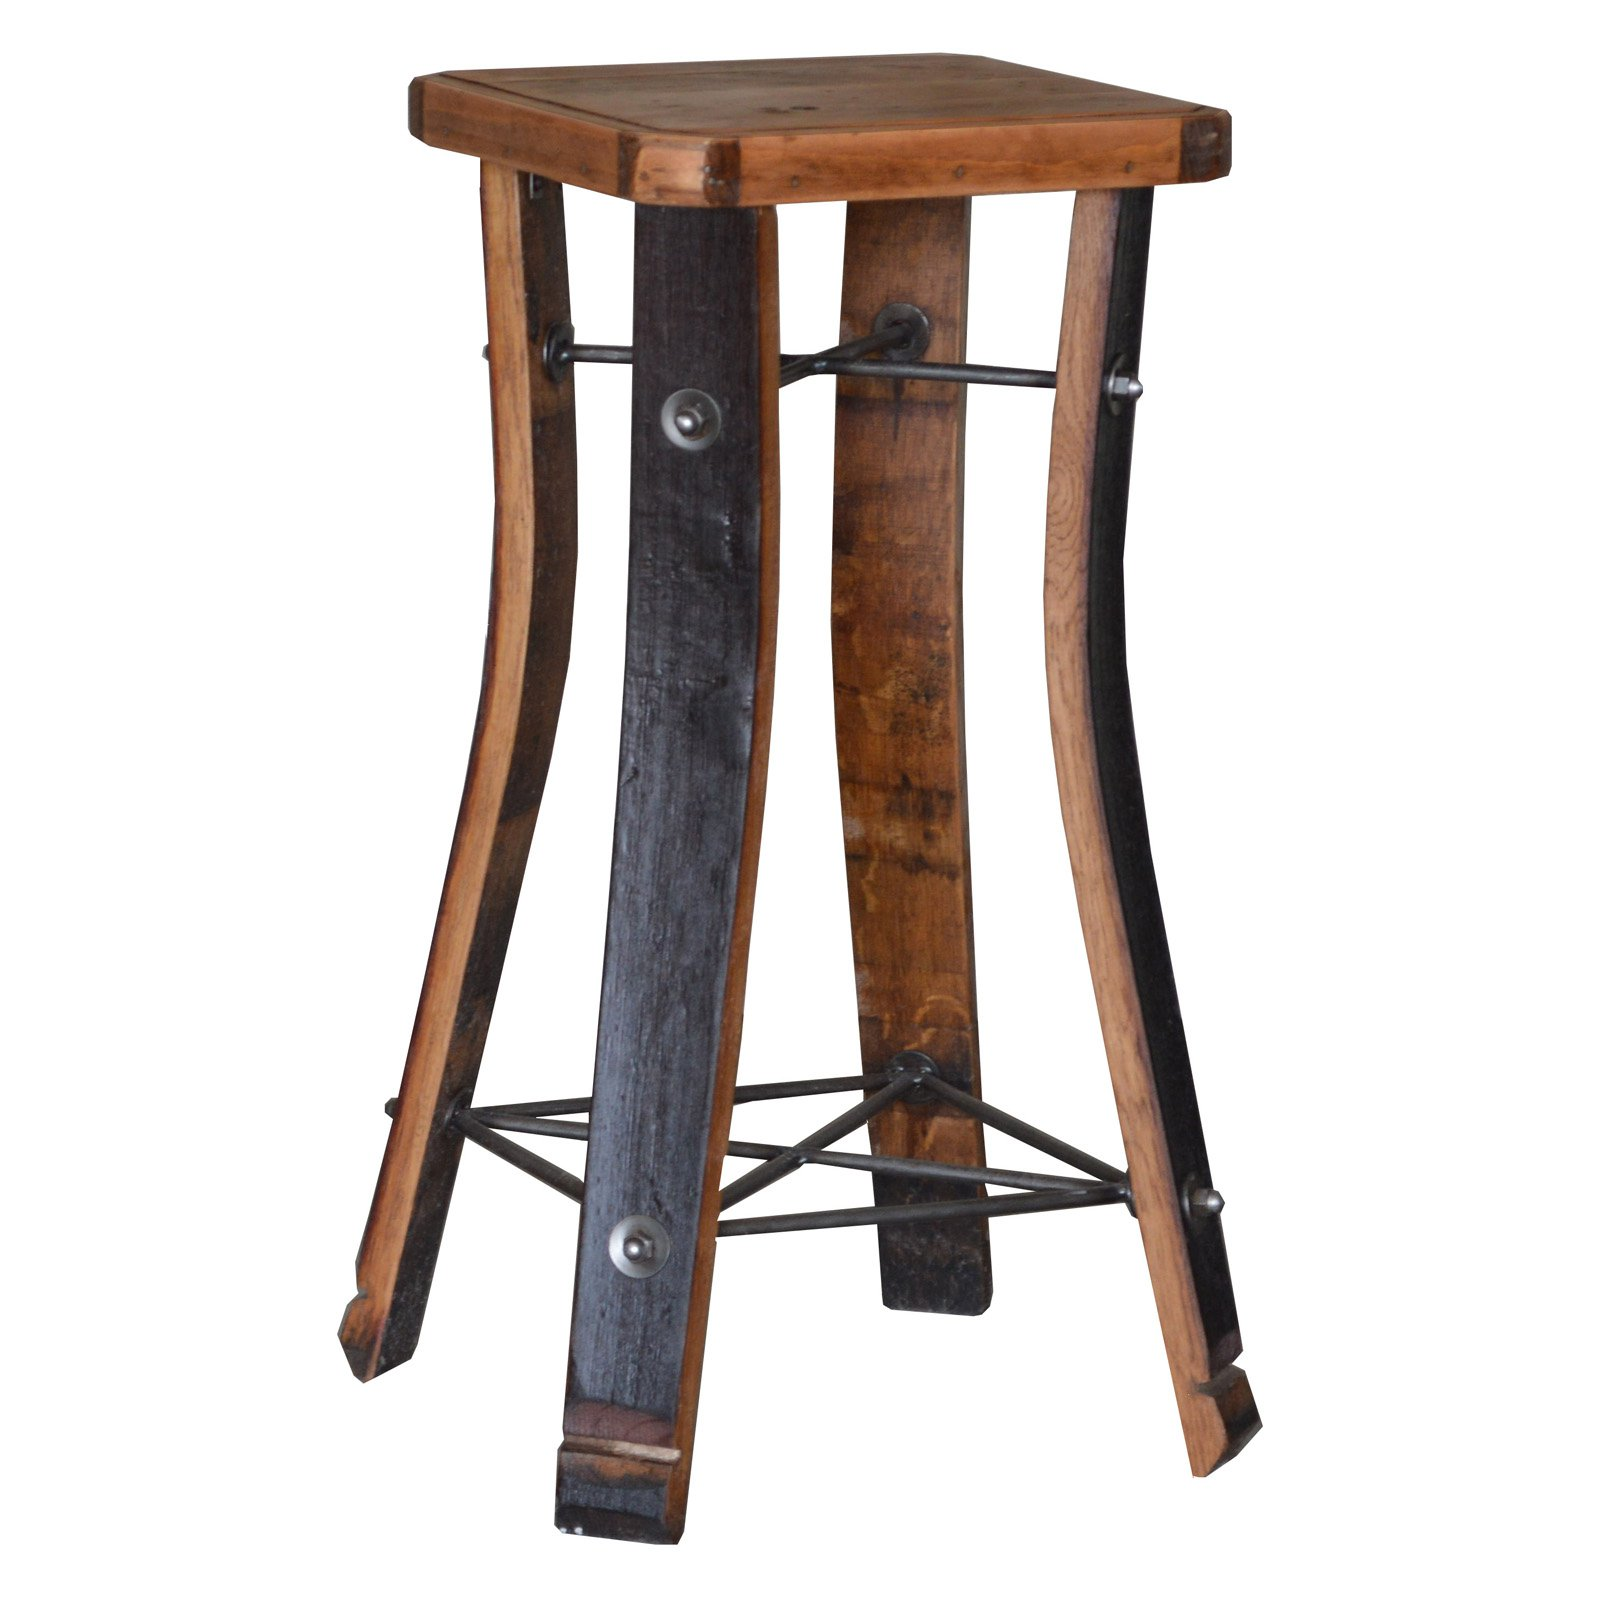 2 Day Designs Reclaimed 28 in. Napa Valley Bar Stool